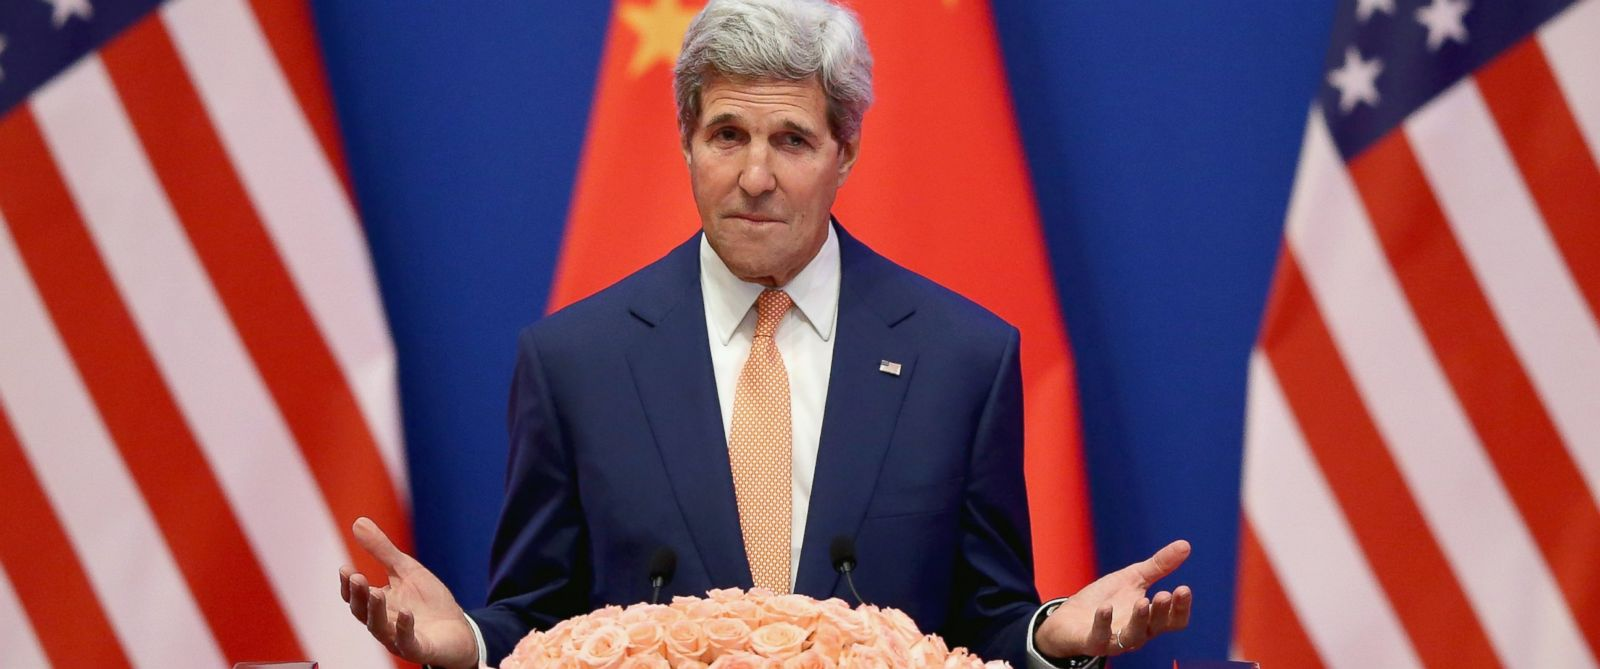 PHOTO: U.S. Secretary of State John Kerry gives a speech at Diaoyutai State Guest House, July 9, 2014, in Beijing.